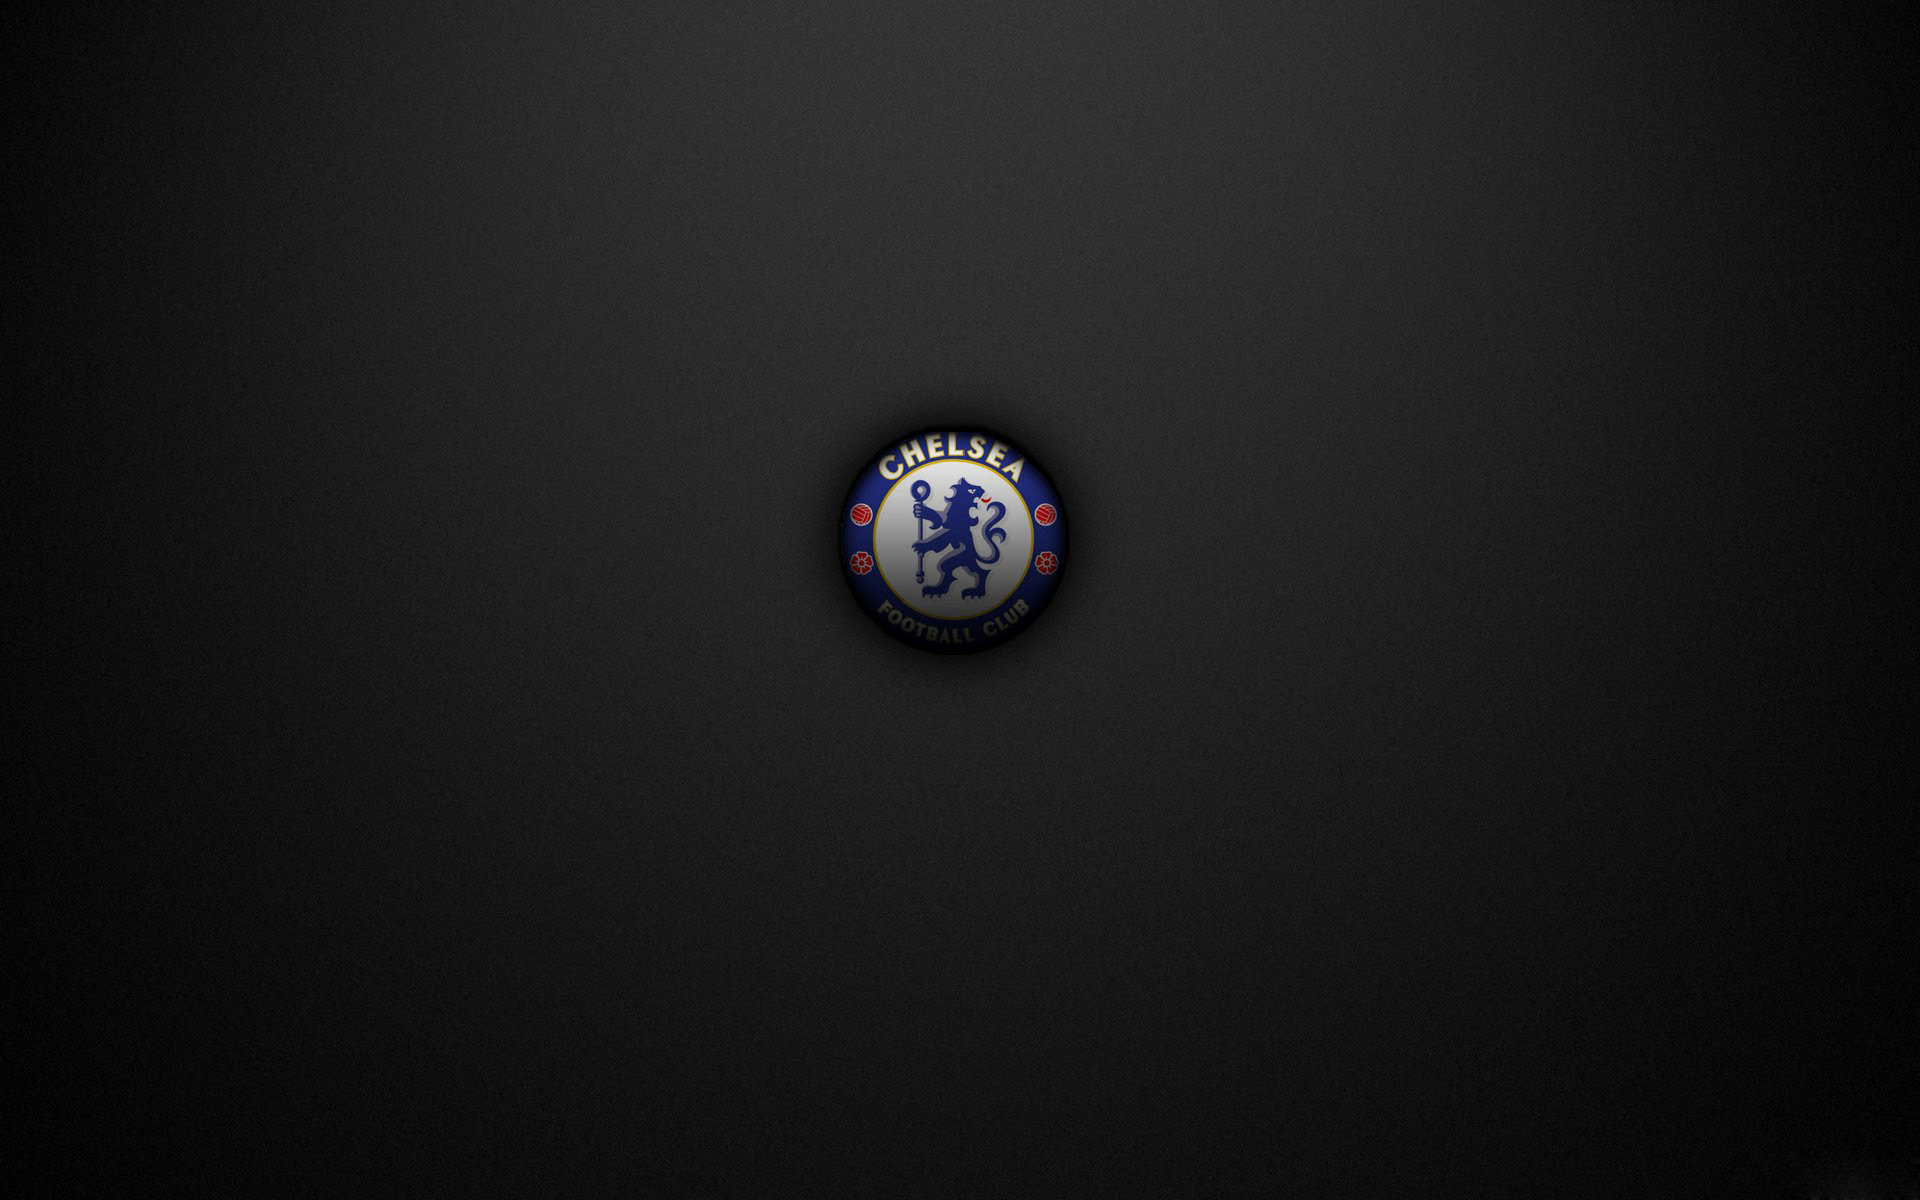 Chelsea Wallpaper 2018 Hd 68 Images